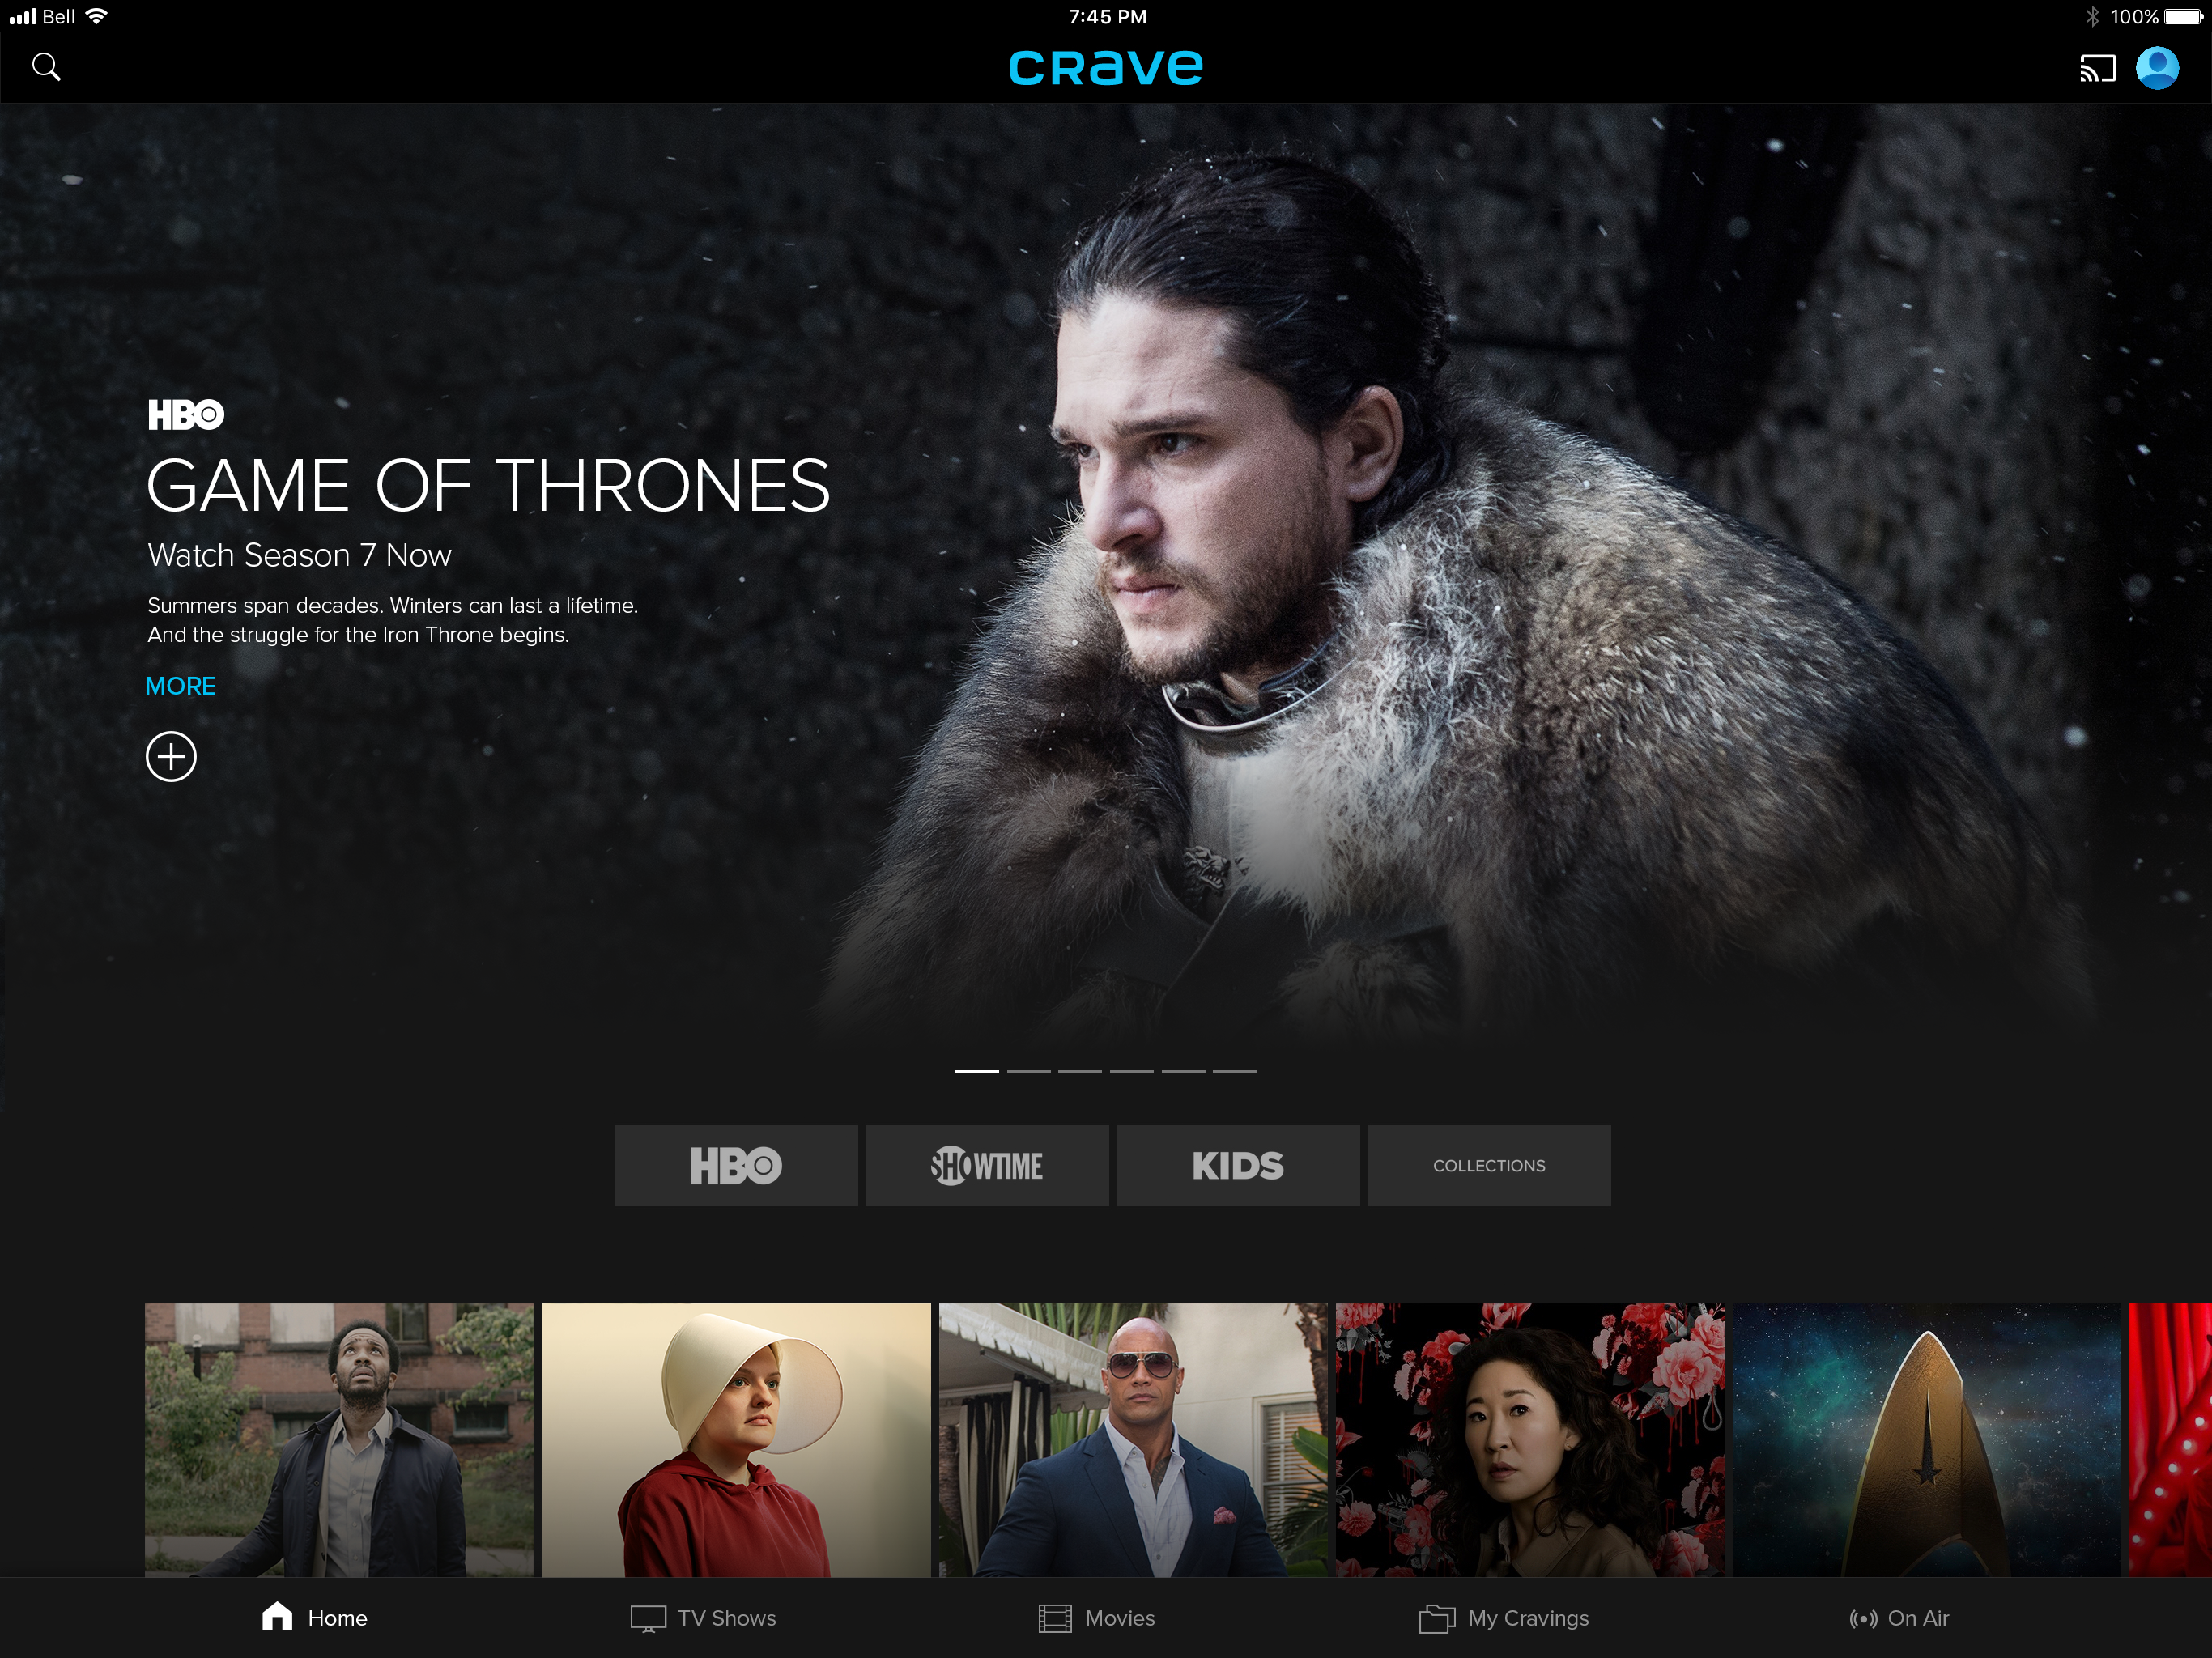 Bell Media S The Movie Network Hbo Canada And Cravetv Come Together As The All New Crave Bell Media